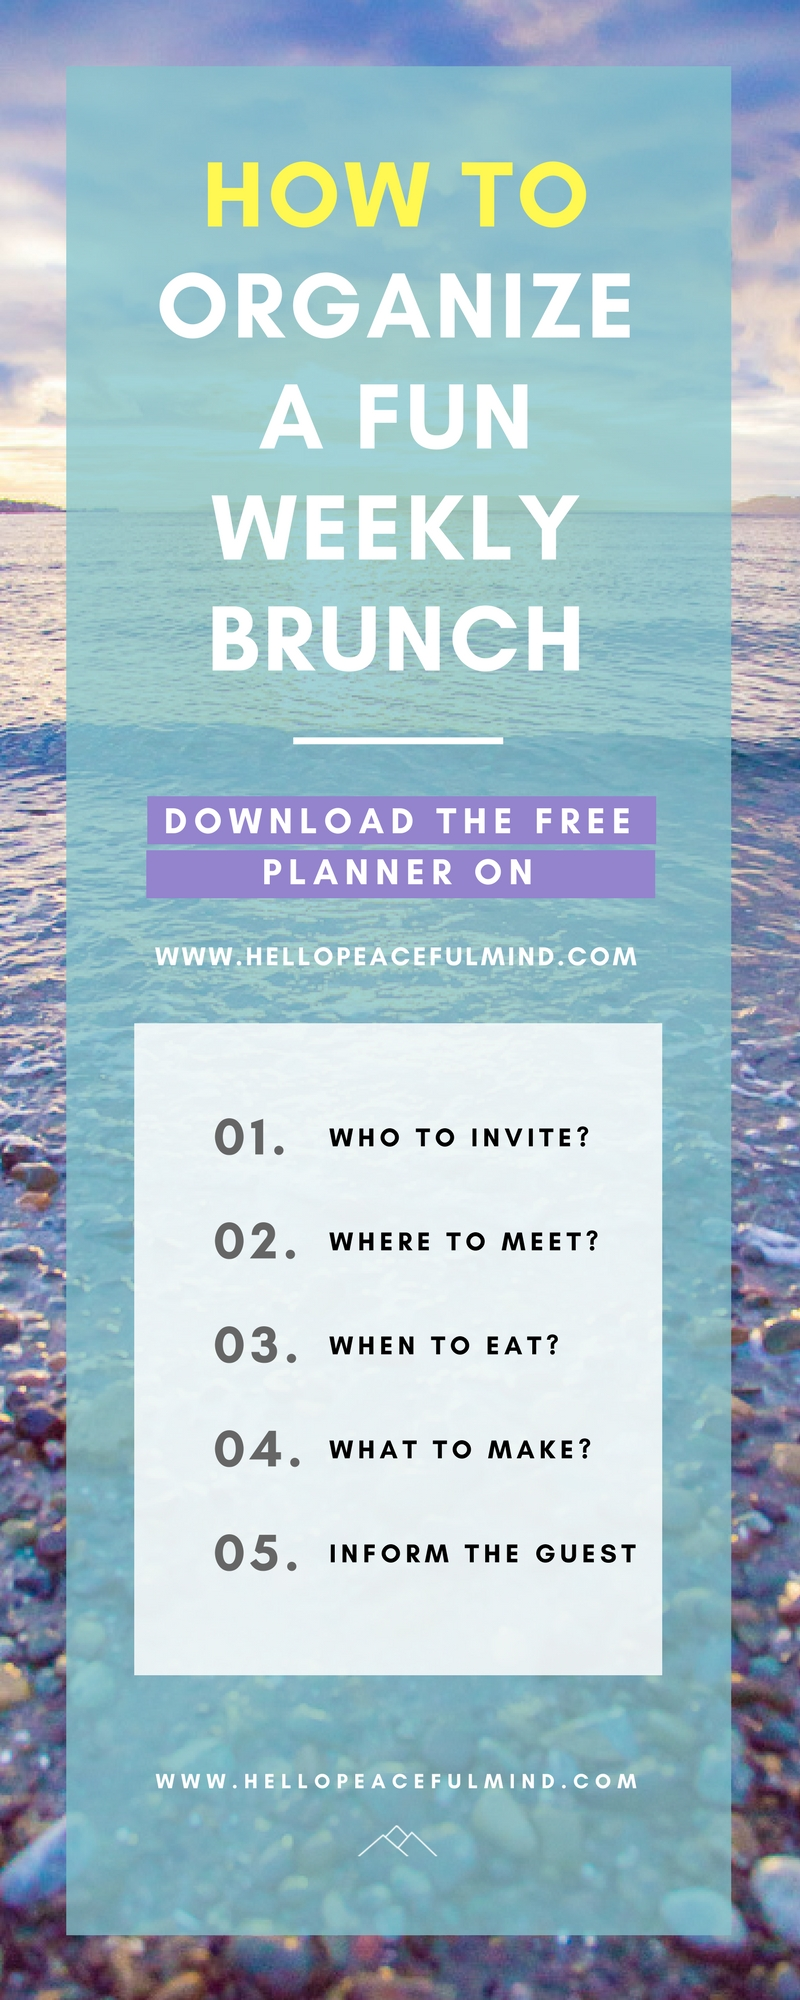 Download your FREE planner to organize a weekly brunch with your friends and family. This step by step guide will help you decide on who to invite, when and where to eat, what to make and create the invite message! Go to www.HelloPeacefulMind.com to get your planner today!